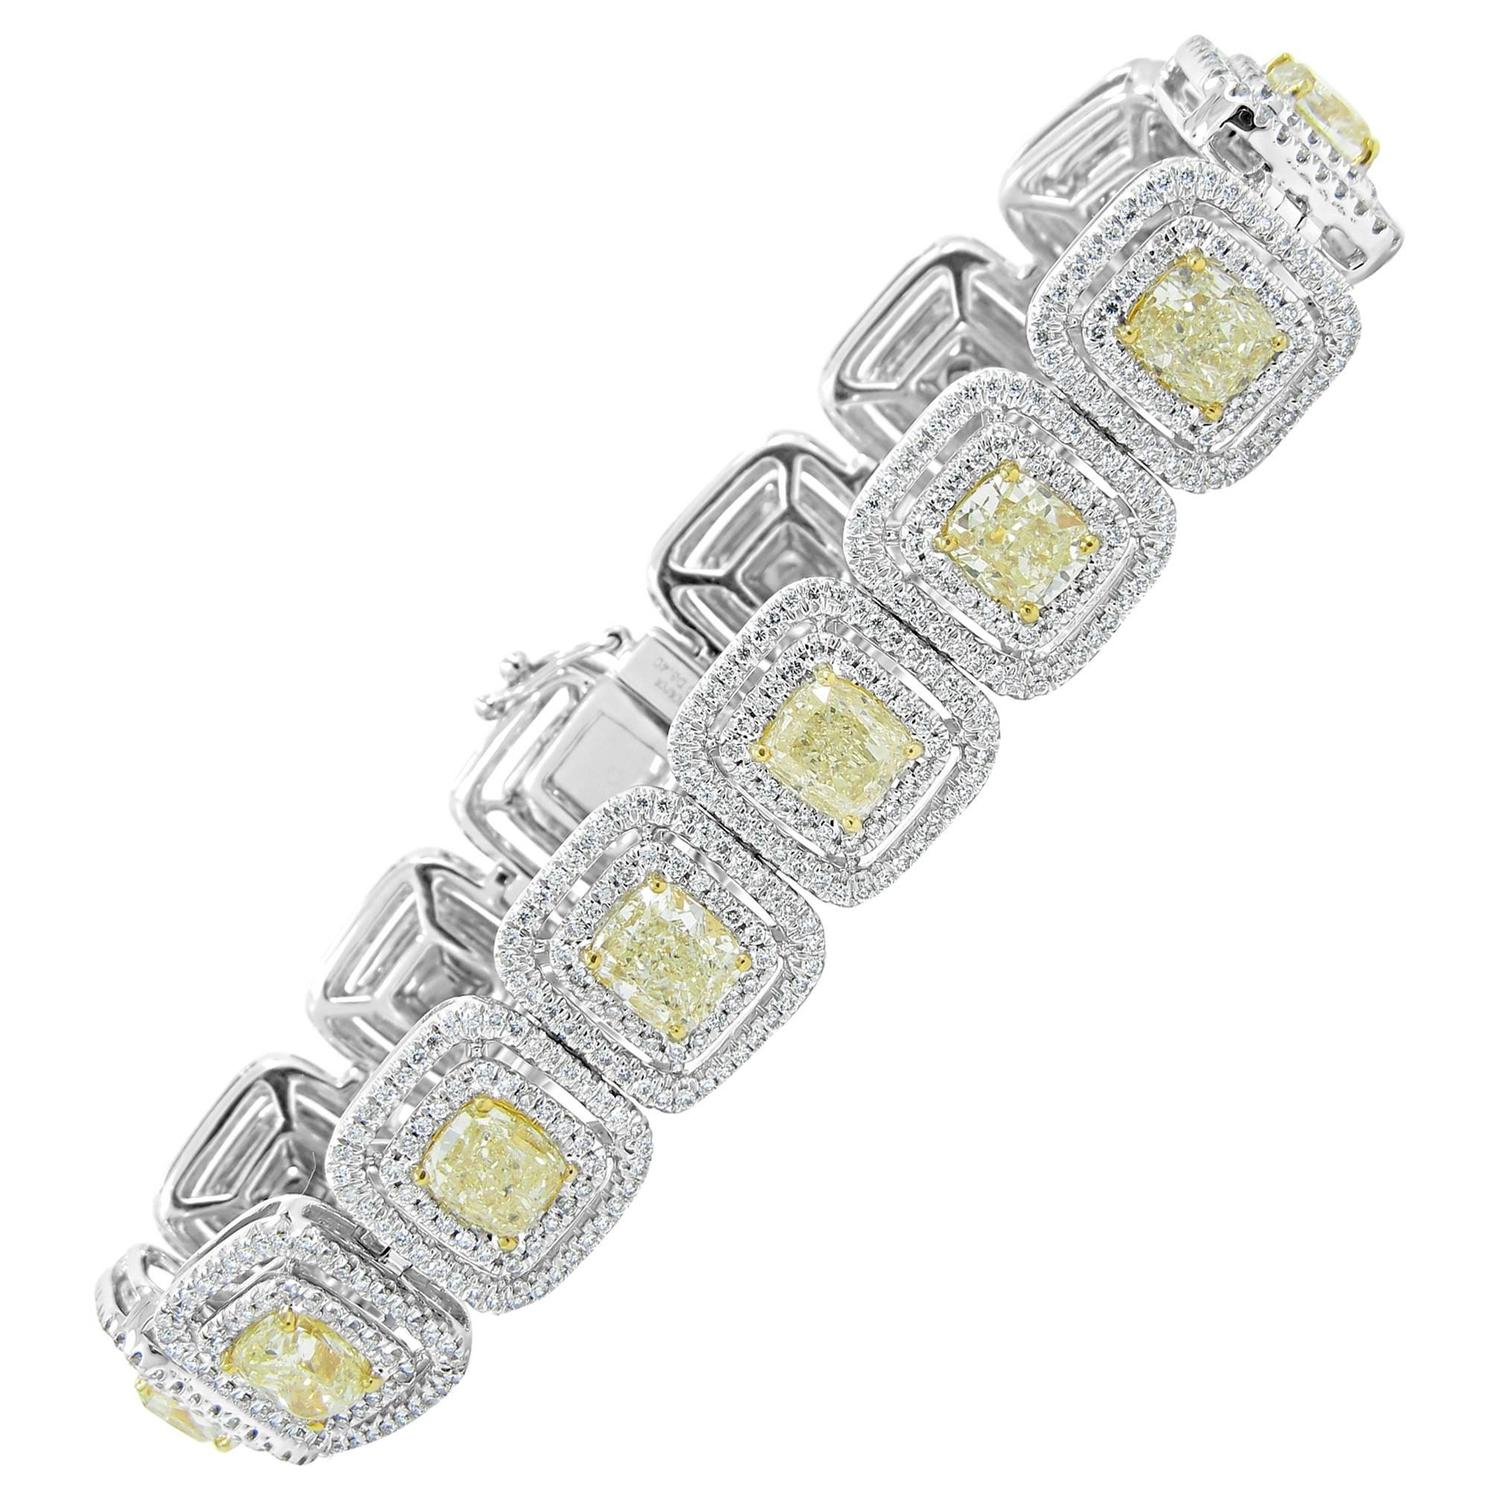 diamond lotfinder pearl marquise a gnv bracelet by cartier lot and jewelry details